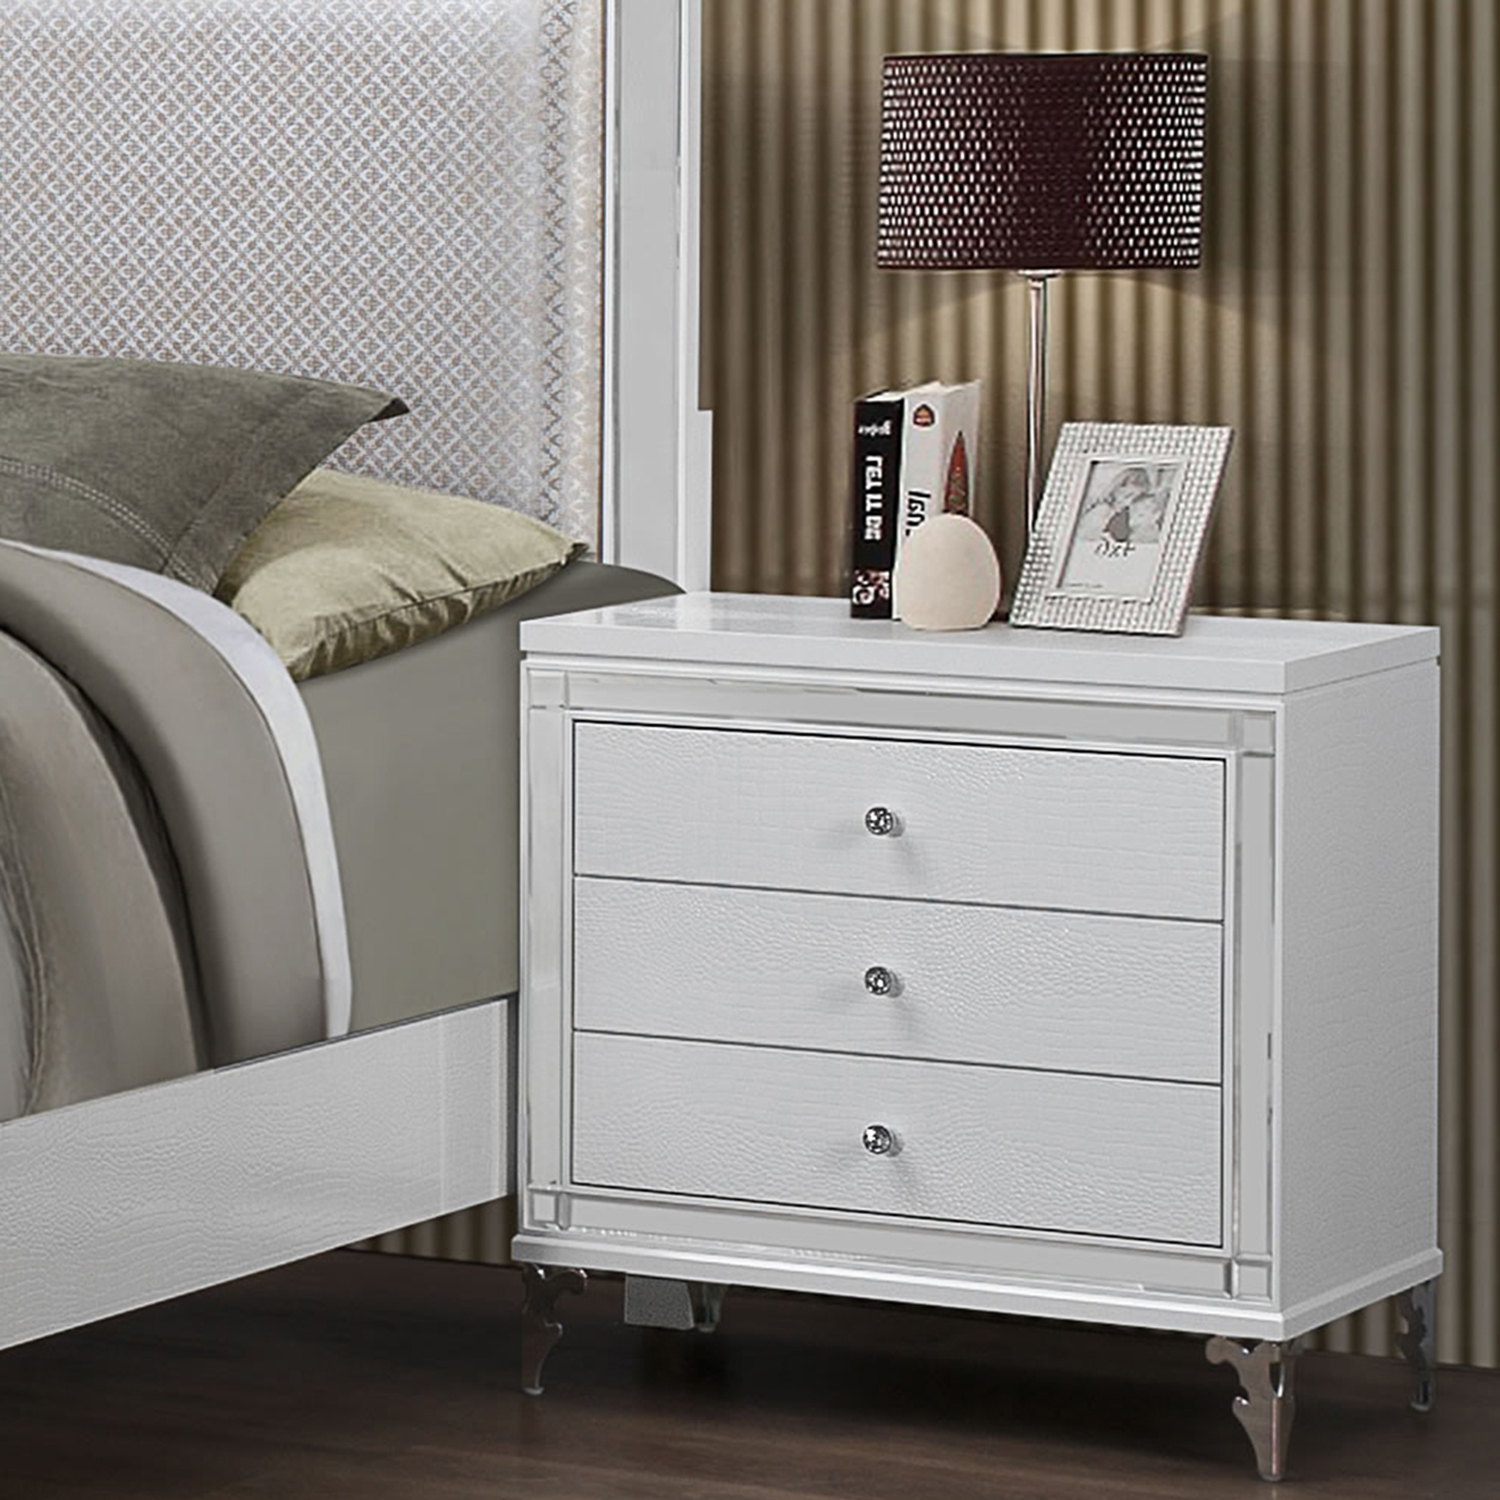 Catalina Nightstand in Metallic White